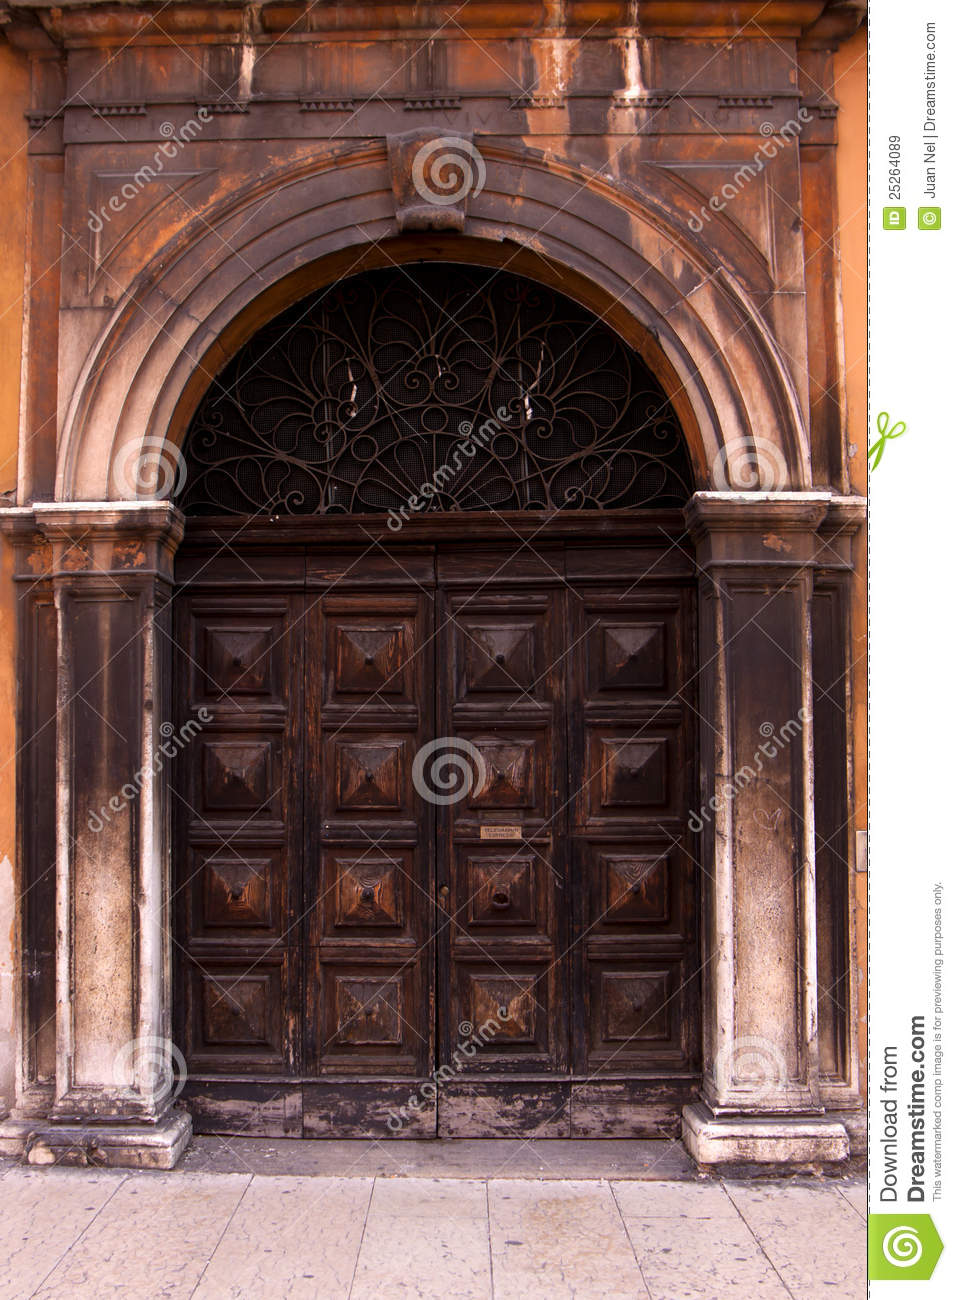 old italian door  stock image  image of european  elegant